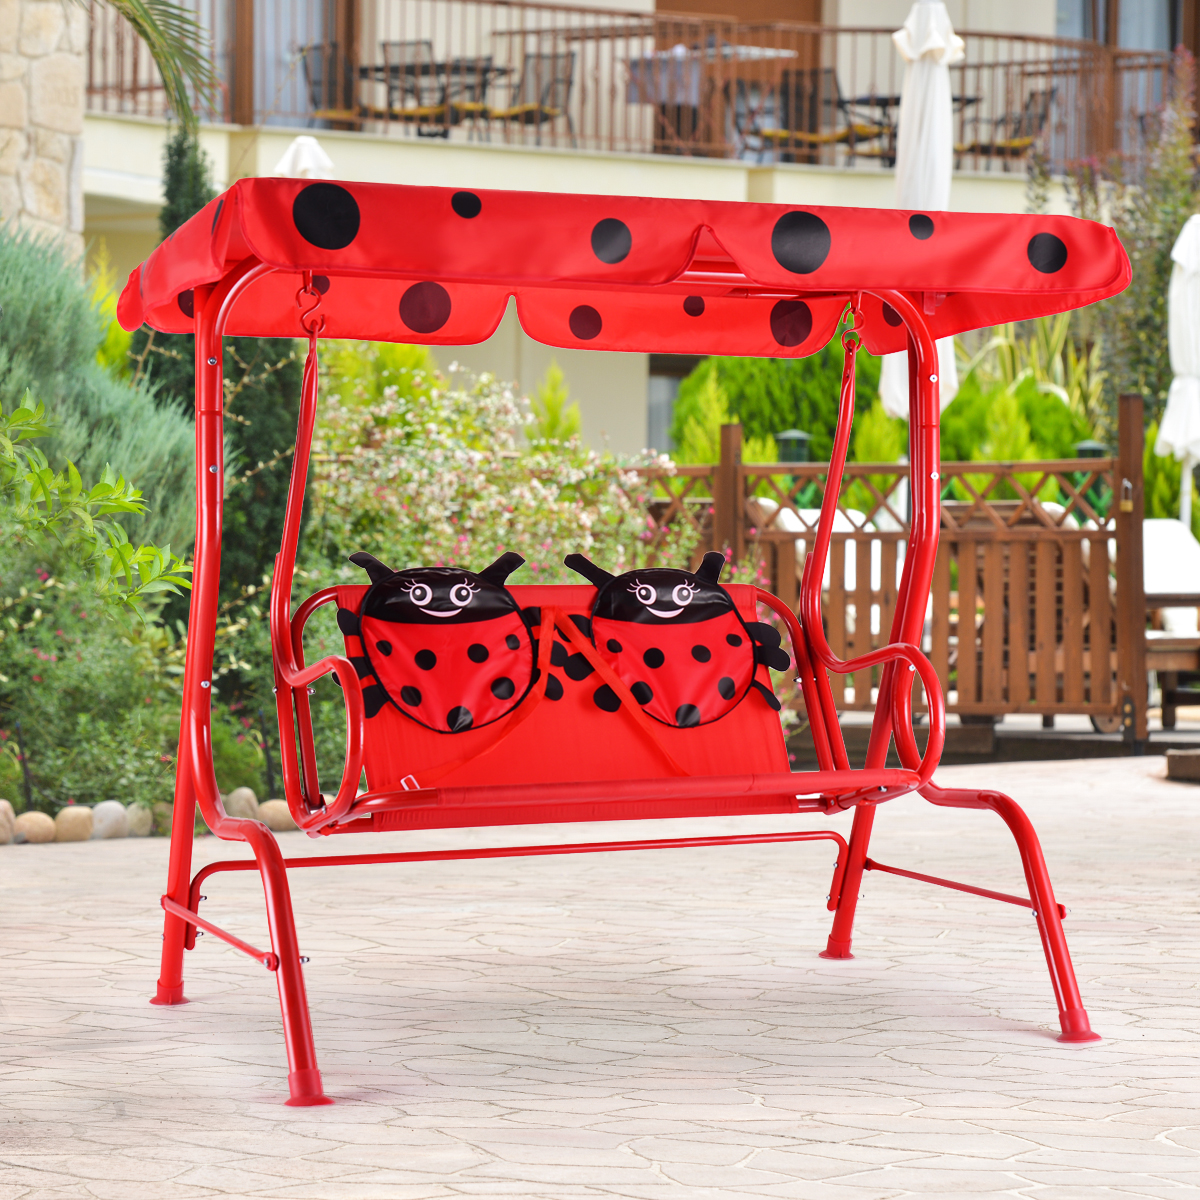 Kids Patio Swing Chair Children Porch Bench Canopy 2 Person Yard Furniture red - image 5 of 10